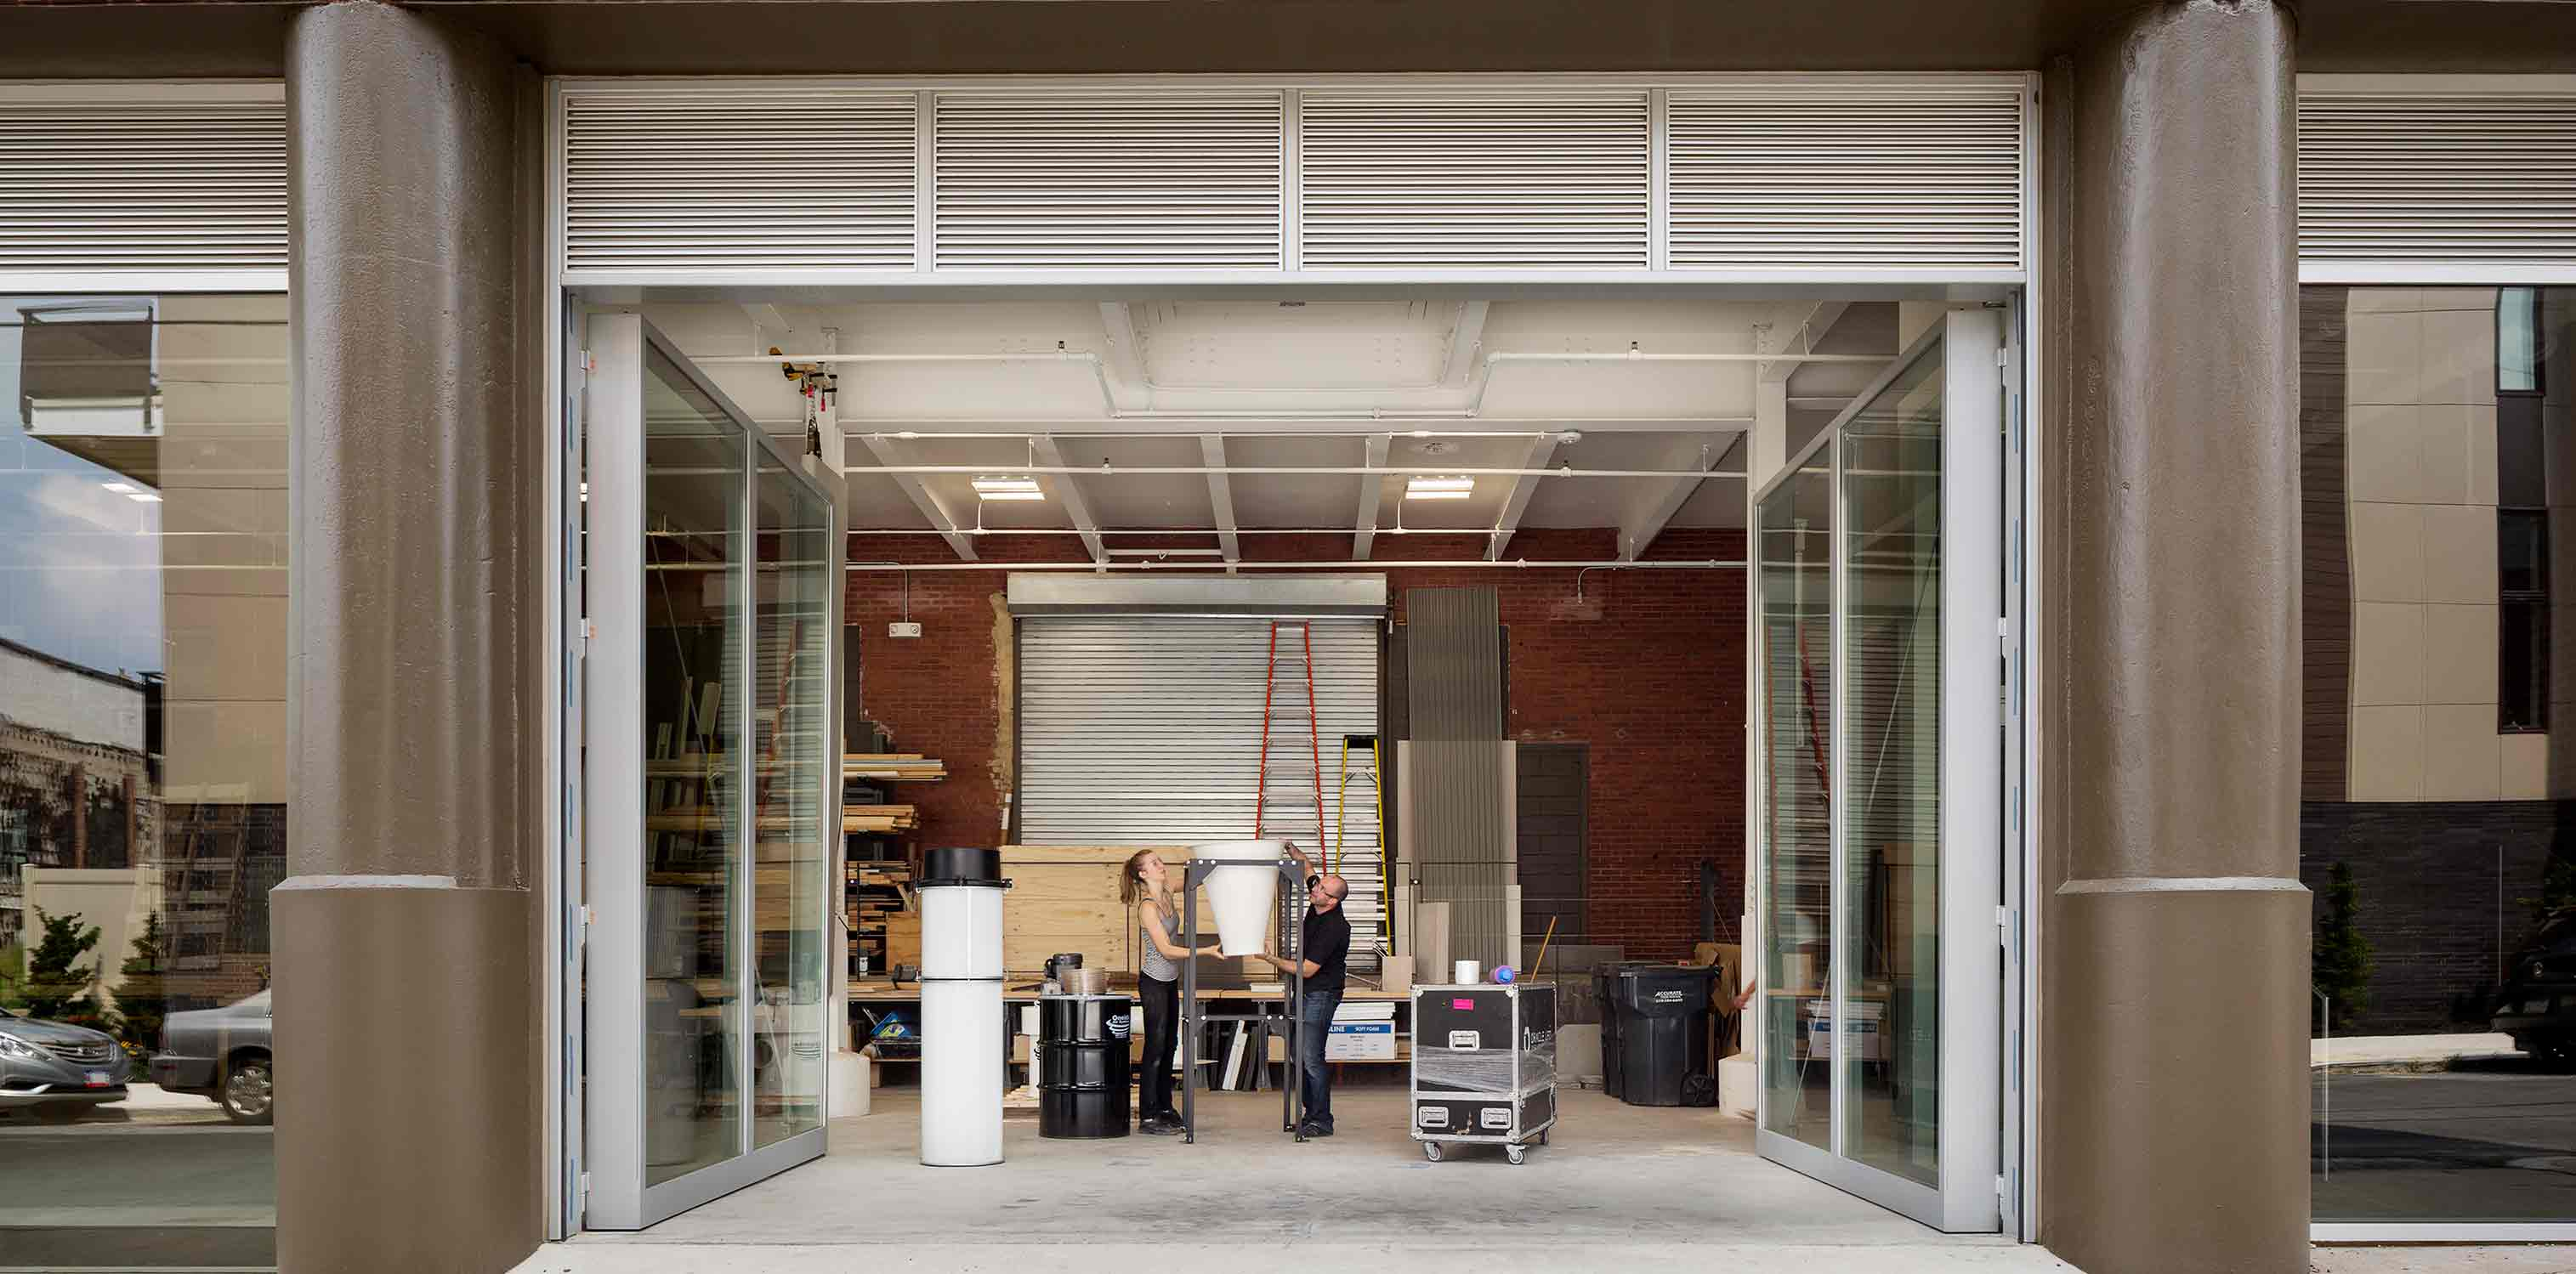 <p>The workshop's 13-foot-high doors give us the space to construct and move full-scale prototypes, a practice that allows us to anticipate potential challenges before construction even begins.<br> <br /><small>©Michael Moran</small></p>